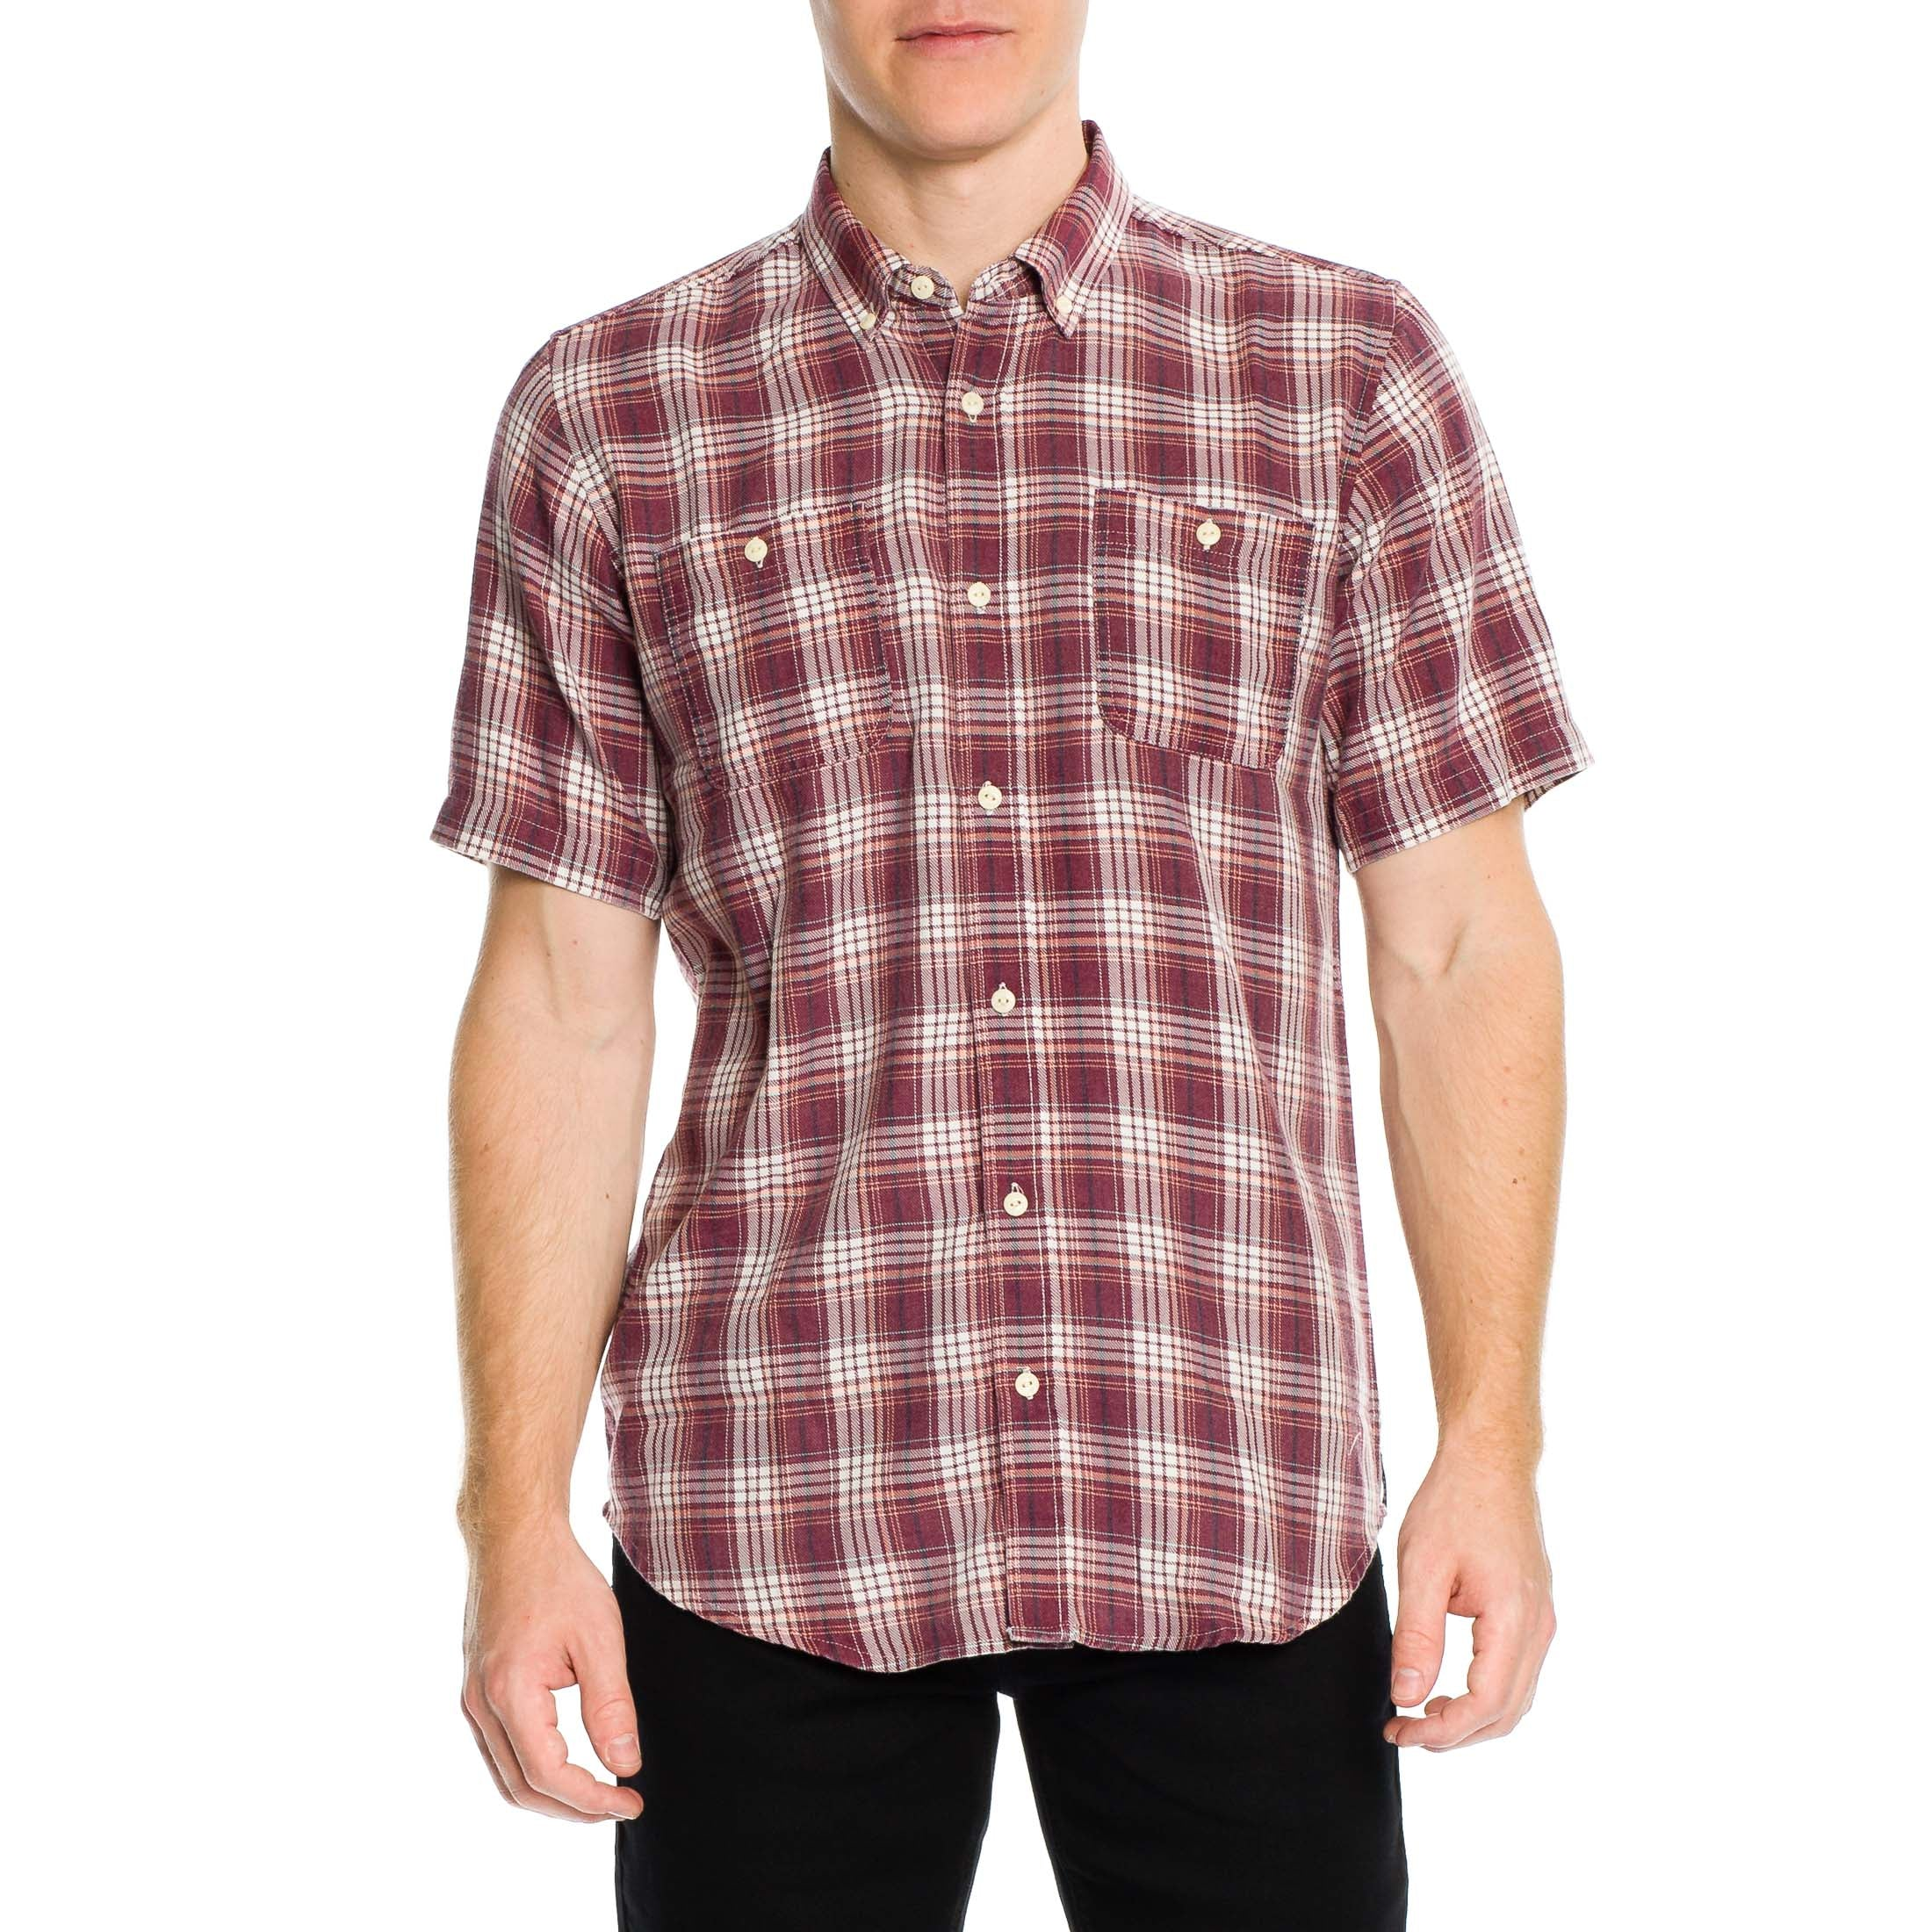 Greenwich Short Sleeve Shirt - Merlot - Ezekiel Clothing